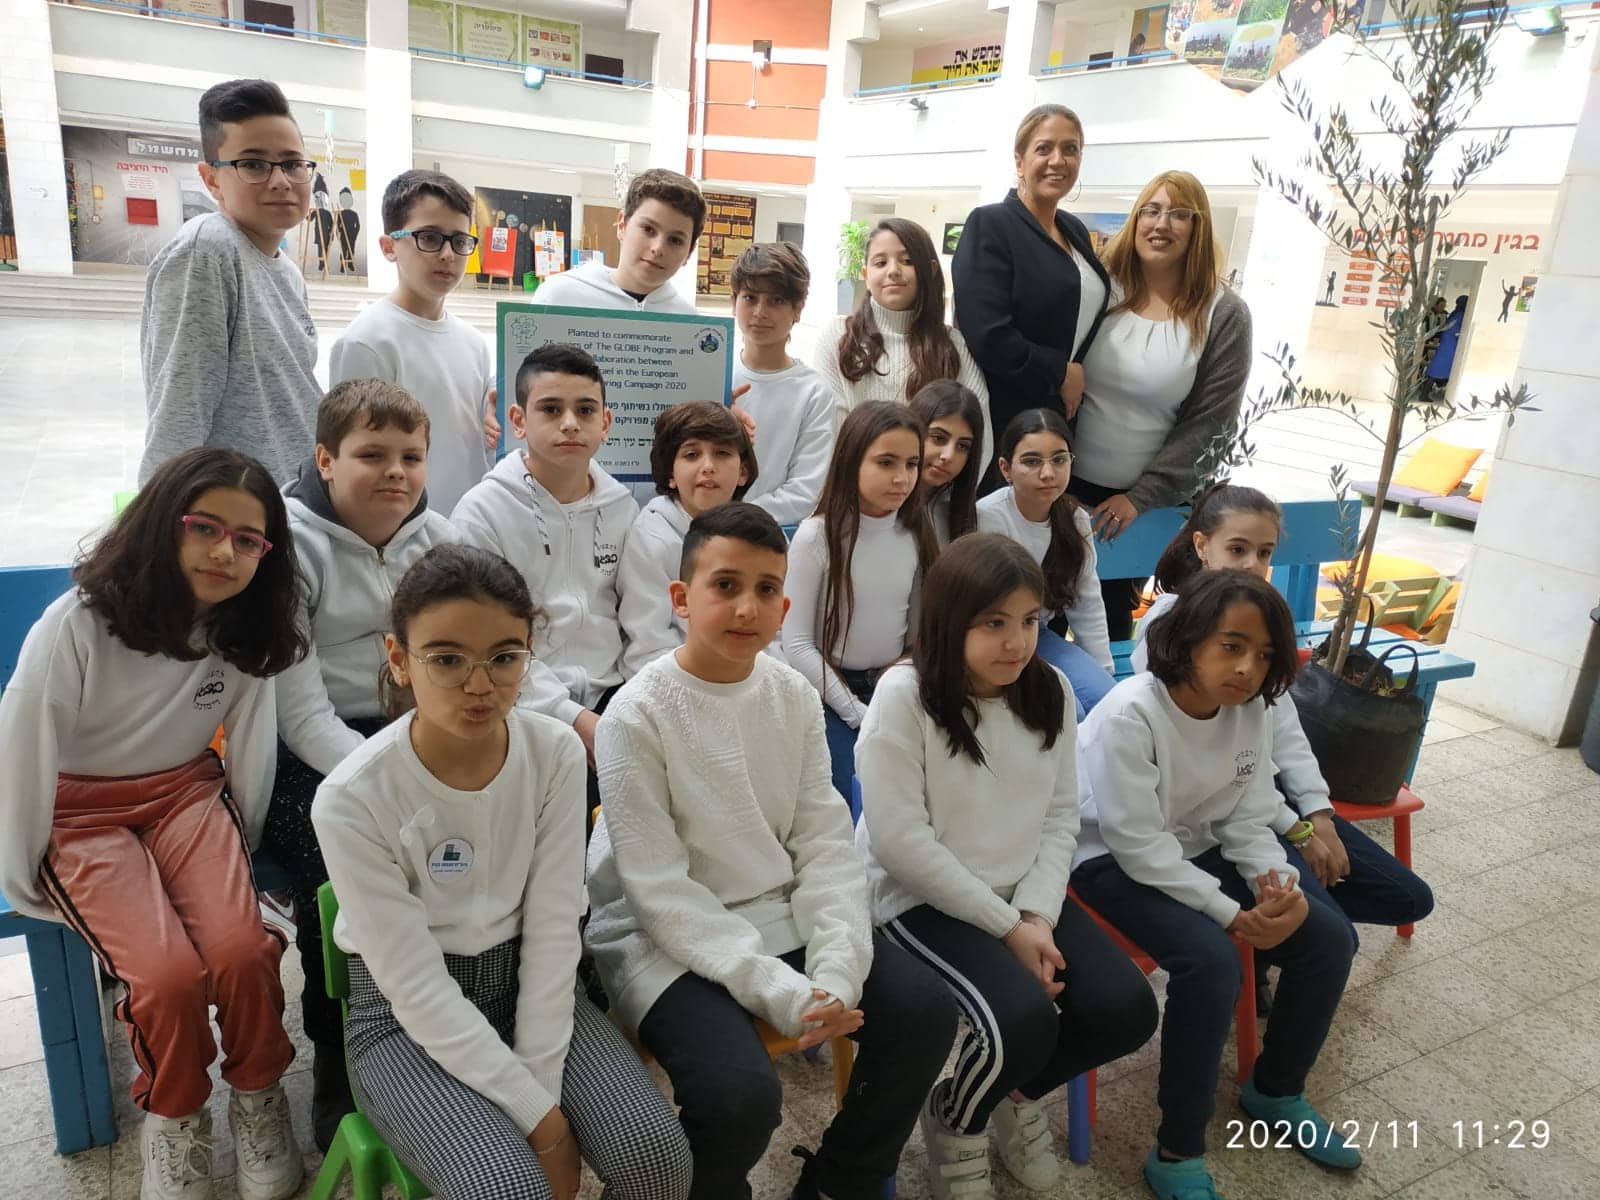 GLOBE students at Begin Elementary School (Dimona, Israel)